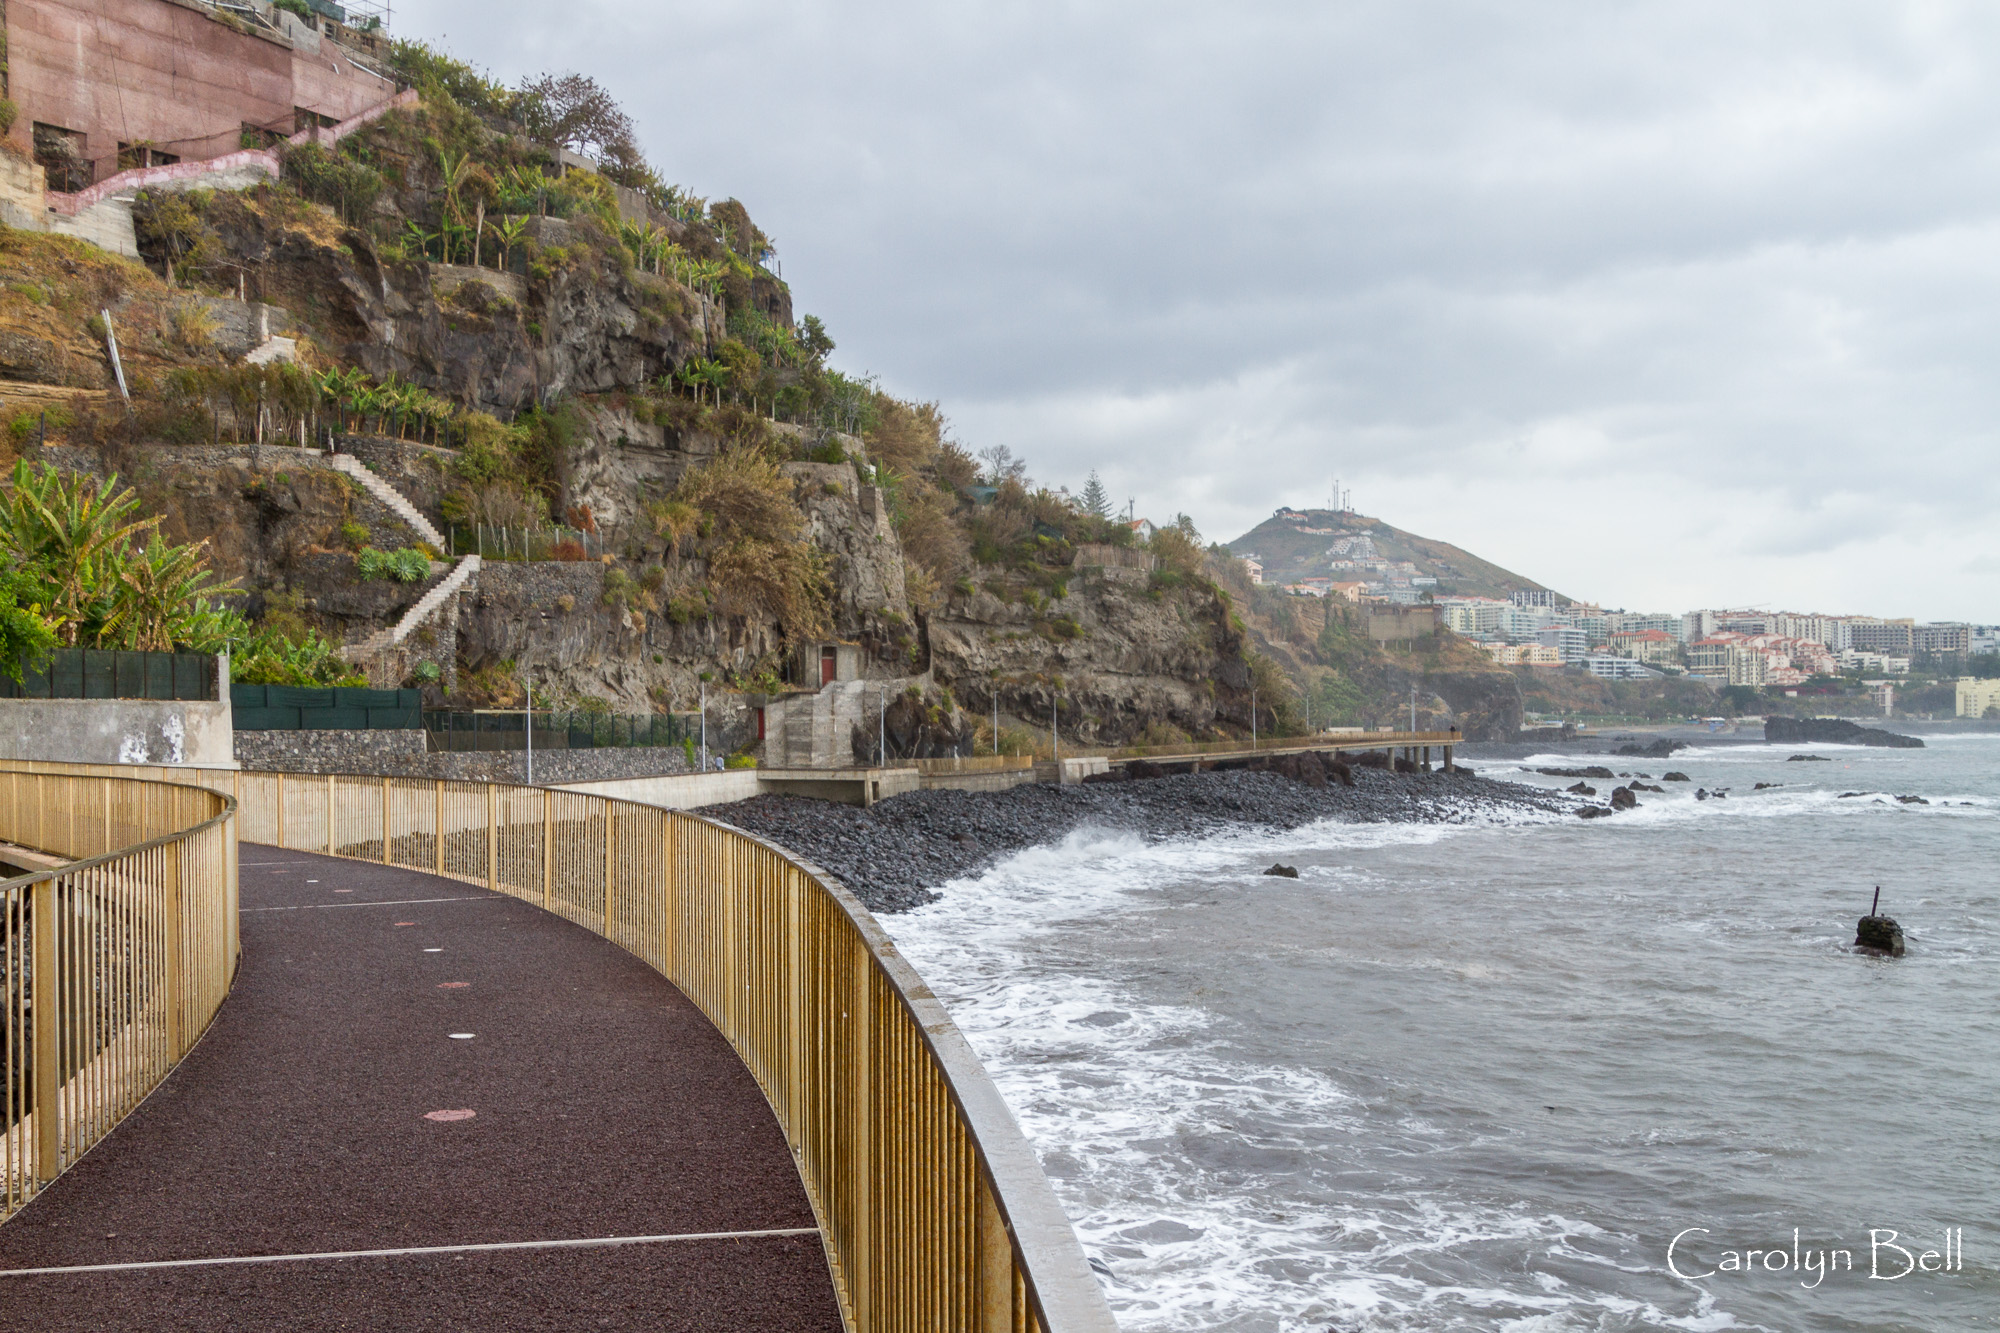 The walkway to Camara de Lobos